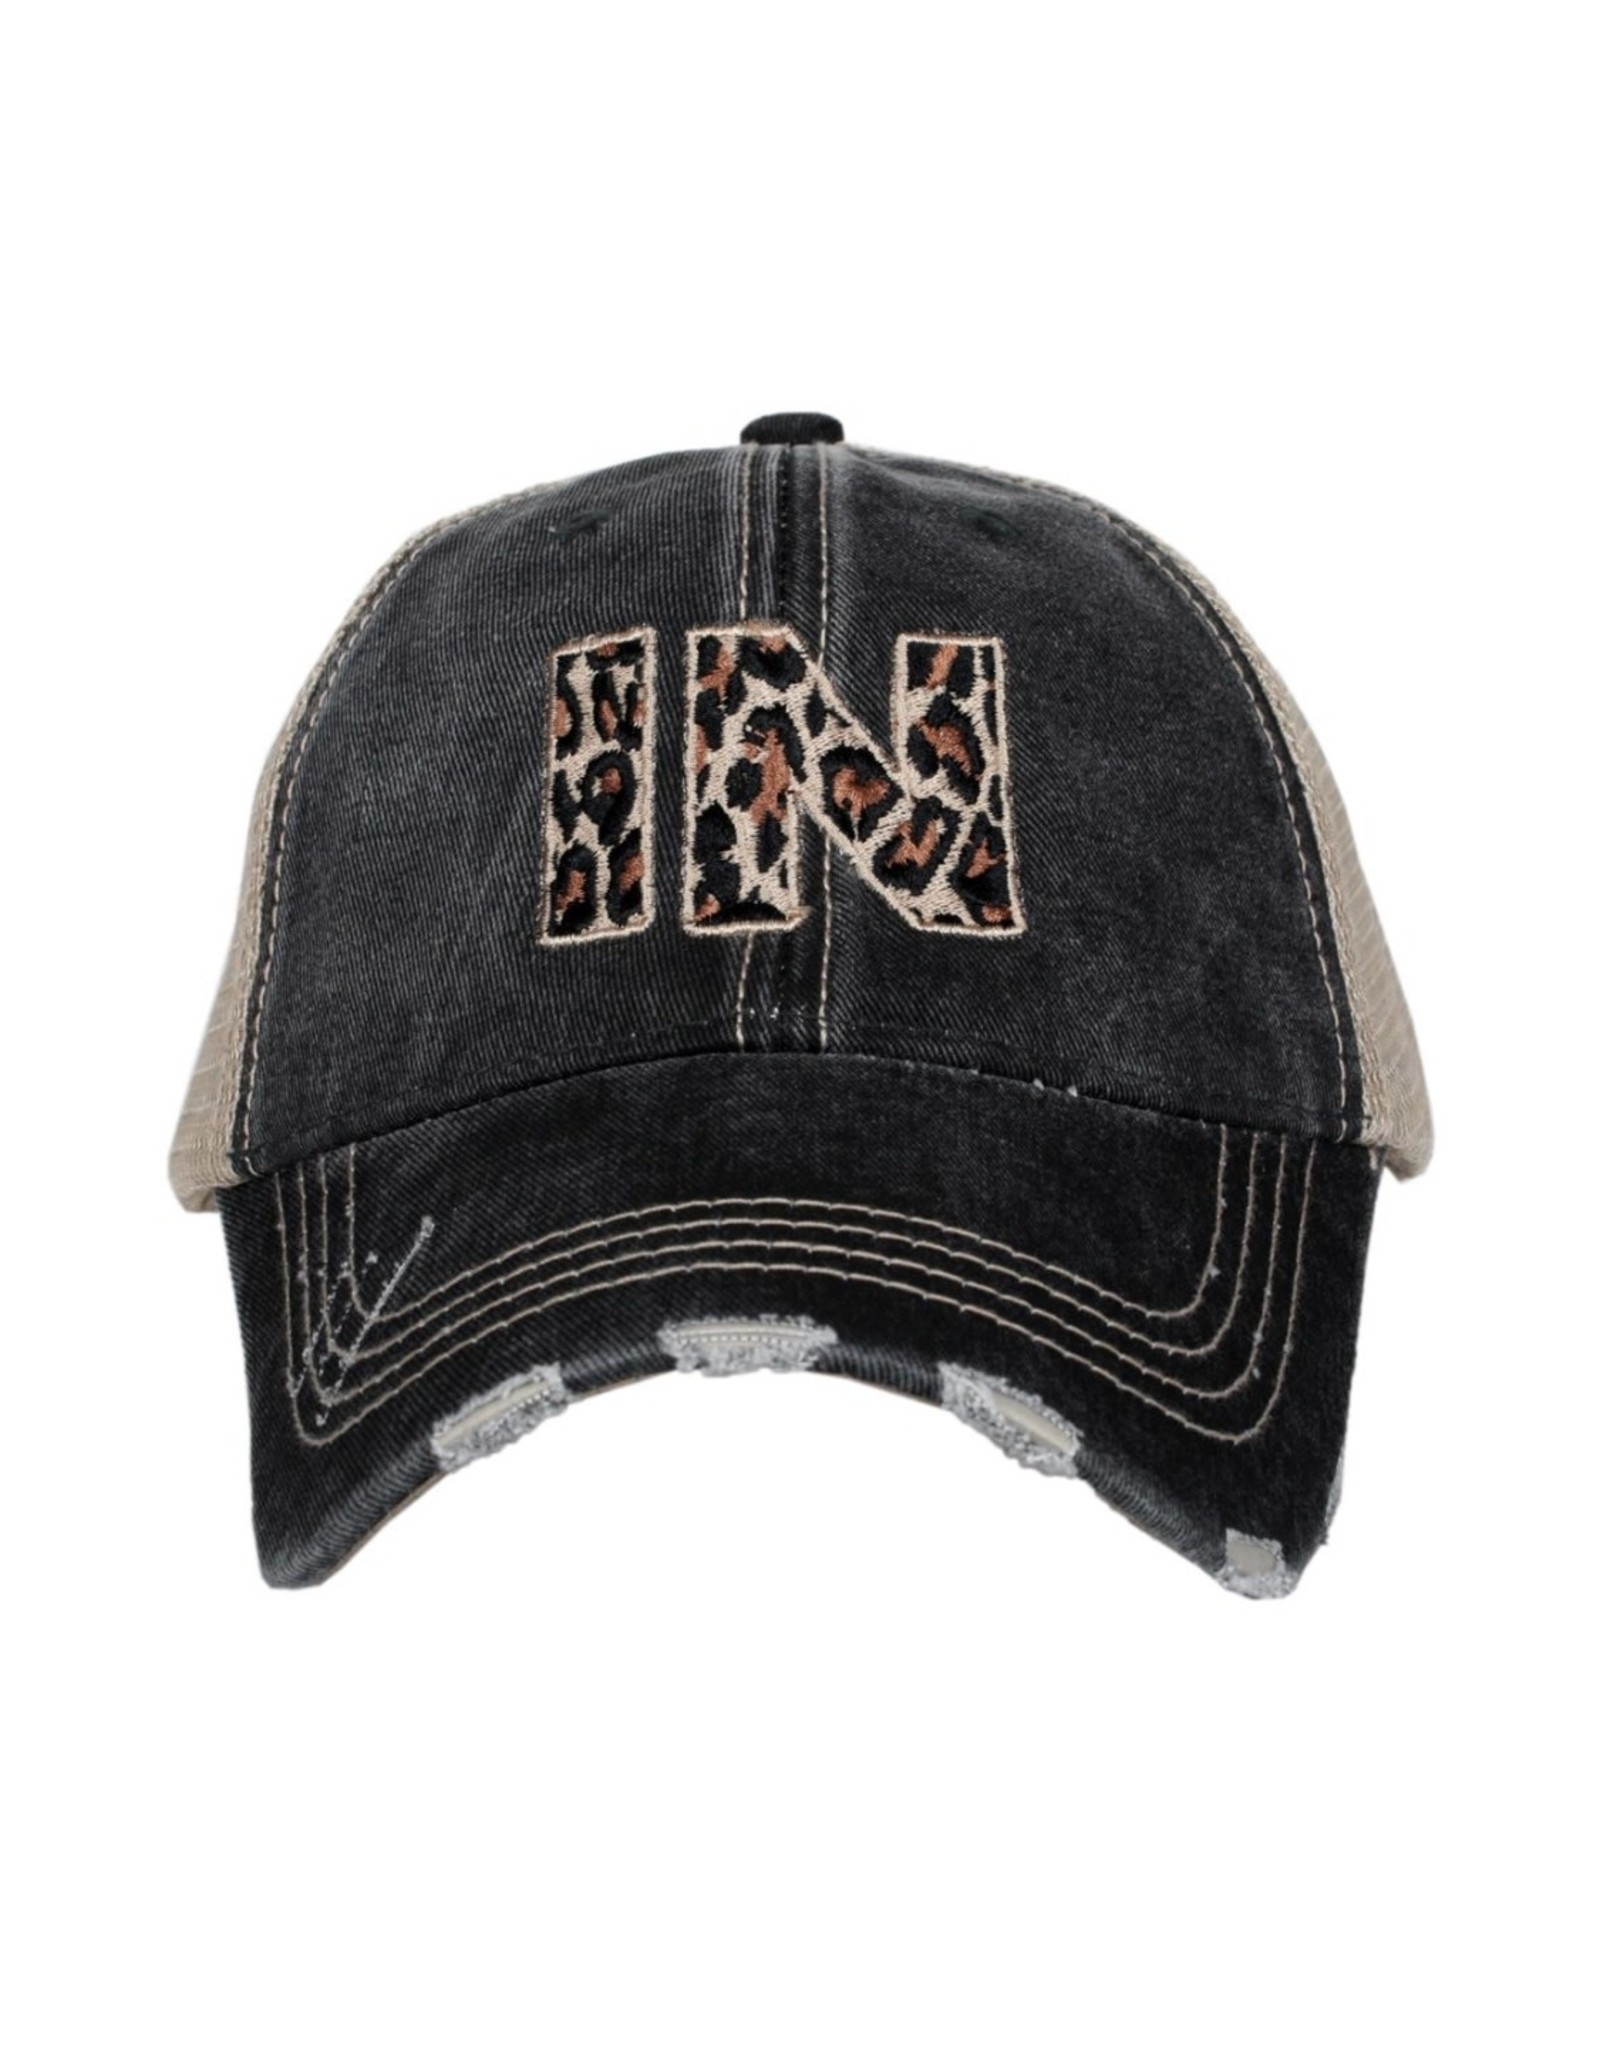 Indiana Leopard Trucker Hat